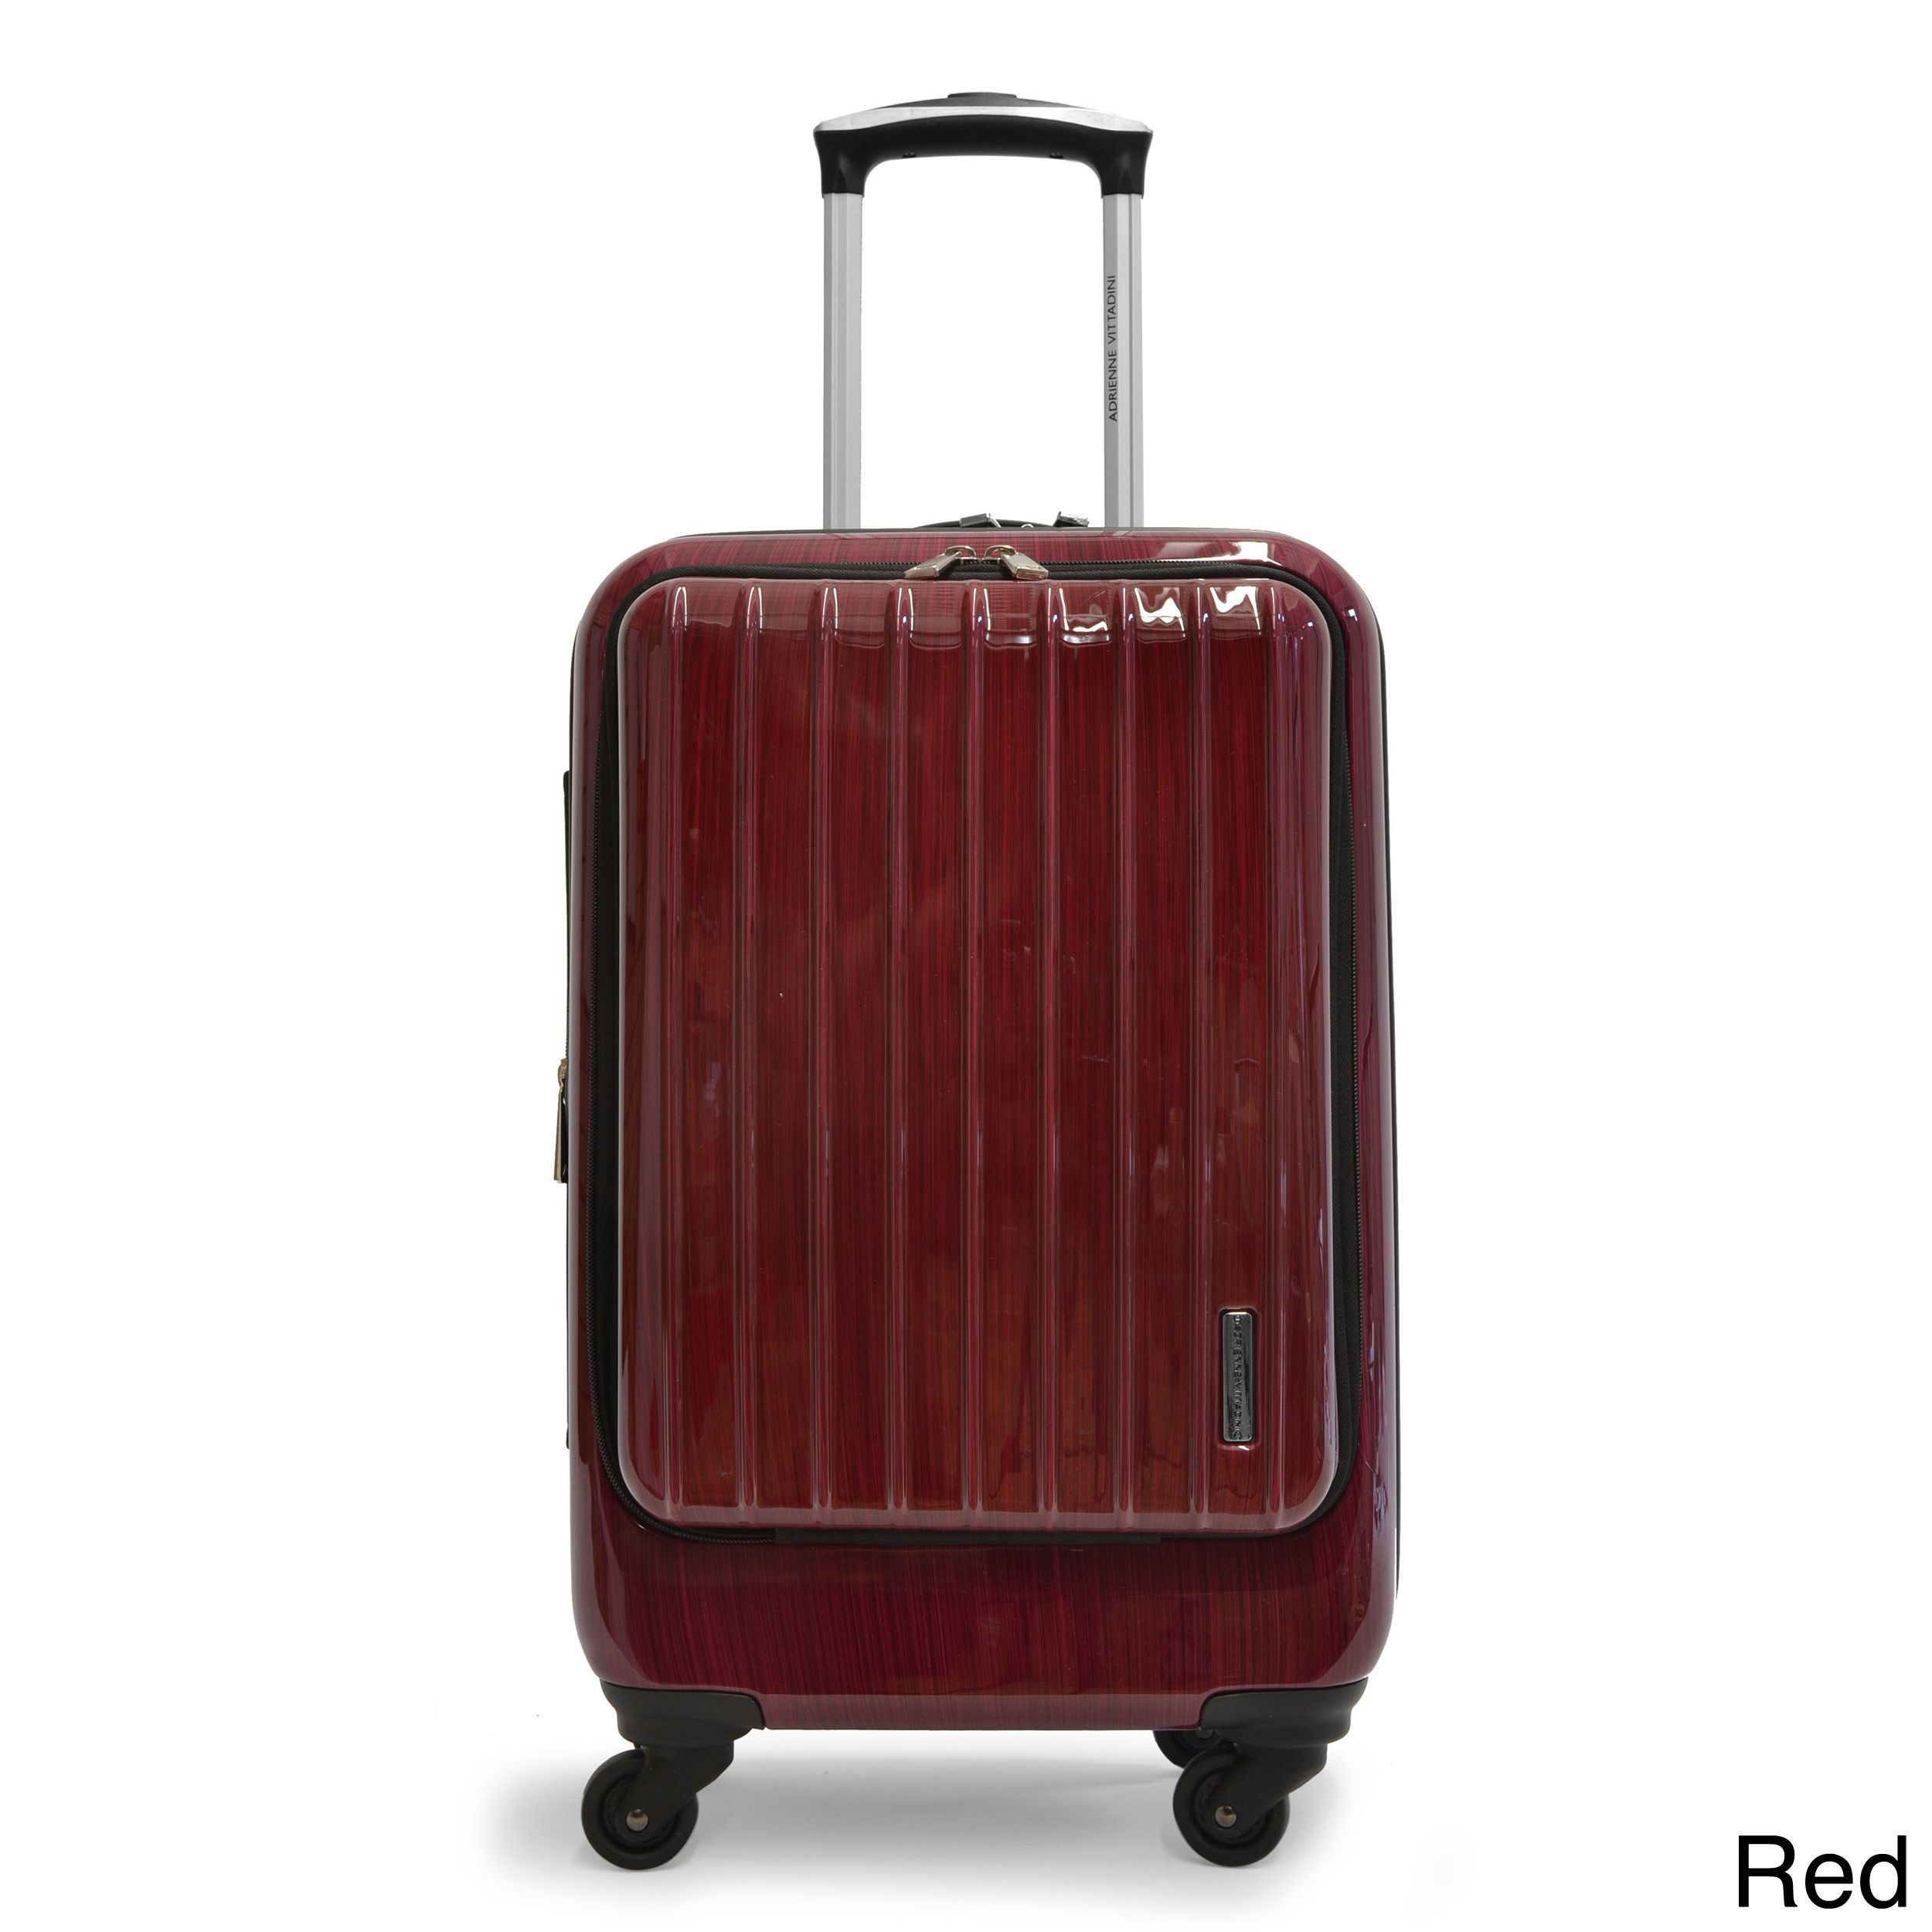 7ee8baa94513 Adrienne Vittadini 21-inch Expandable Carry-on Hardside Spinner ...